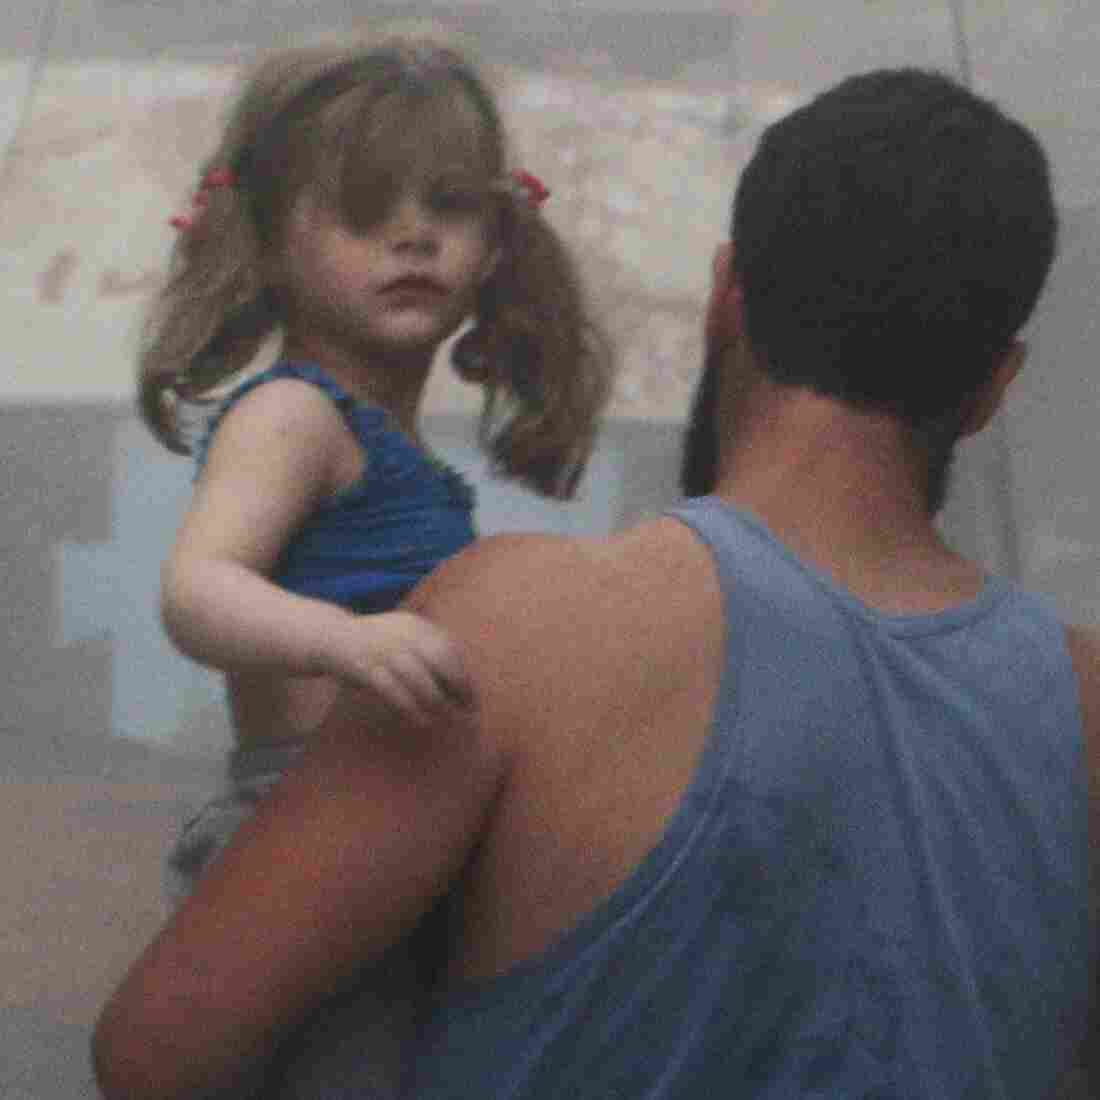 A Syrian man carries a girl on a street covered with dust following a government airstrike in Aleppo on Tuesday. Rebels took the eastern half of the city in 2012 but are now in danger of being forced out by President Bashar Assad's troops.